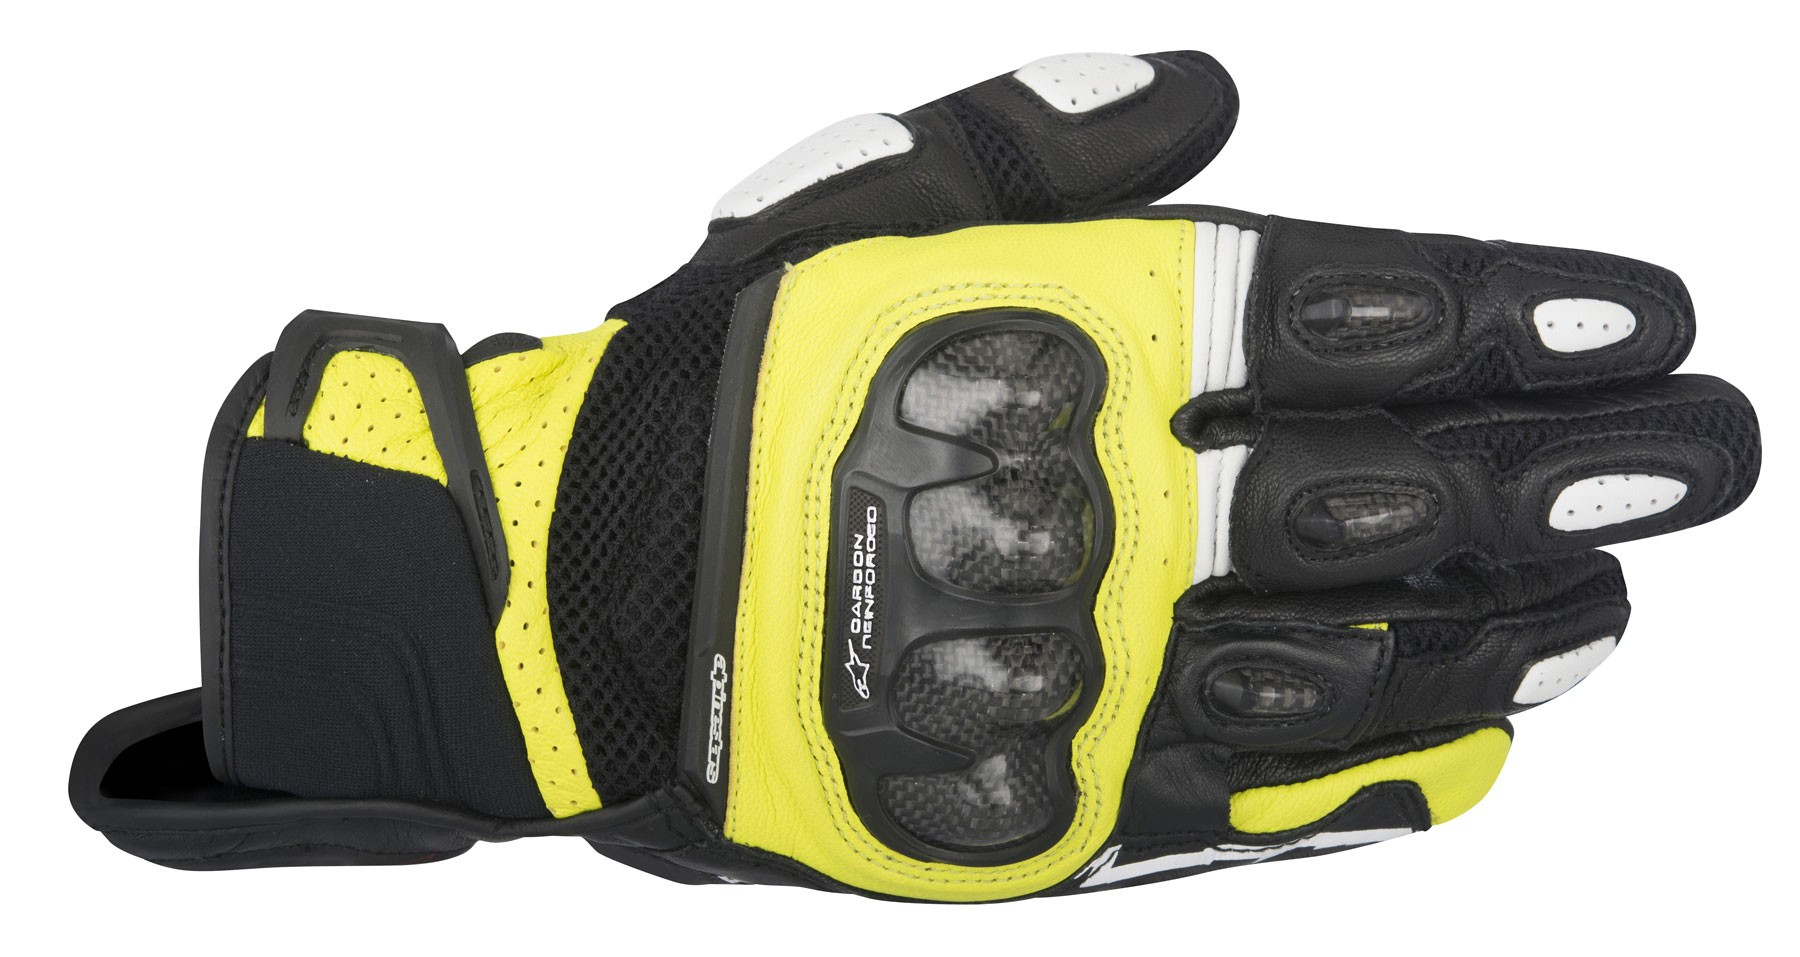 Motorcycle gloves mesh - Alpinestars 2016 Spx Air Carbon Leather Mesh Motorcycle Riding Gloves Black Yellow